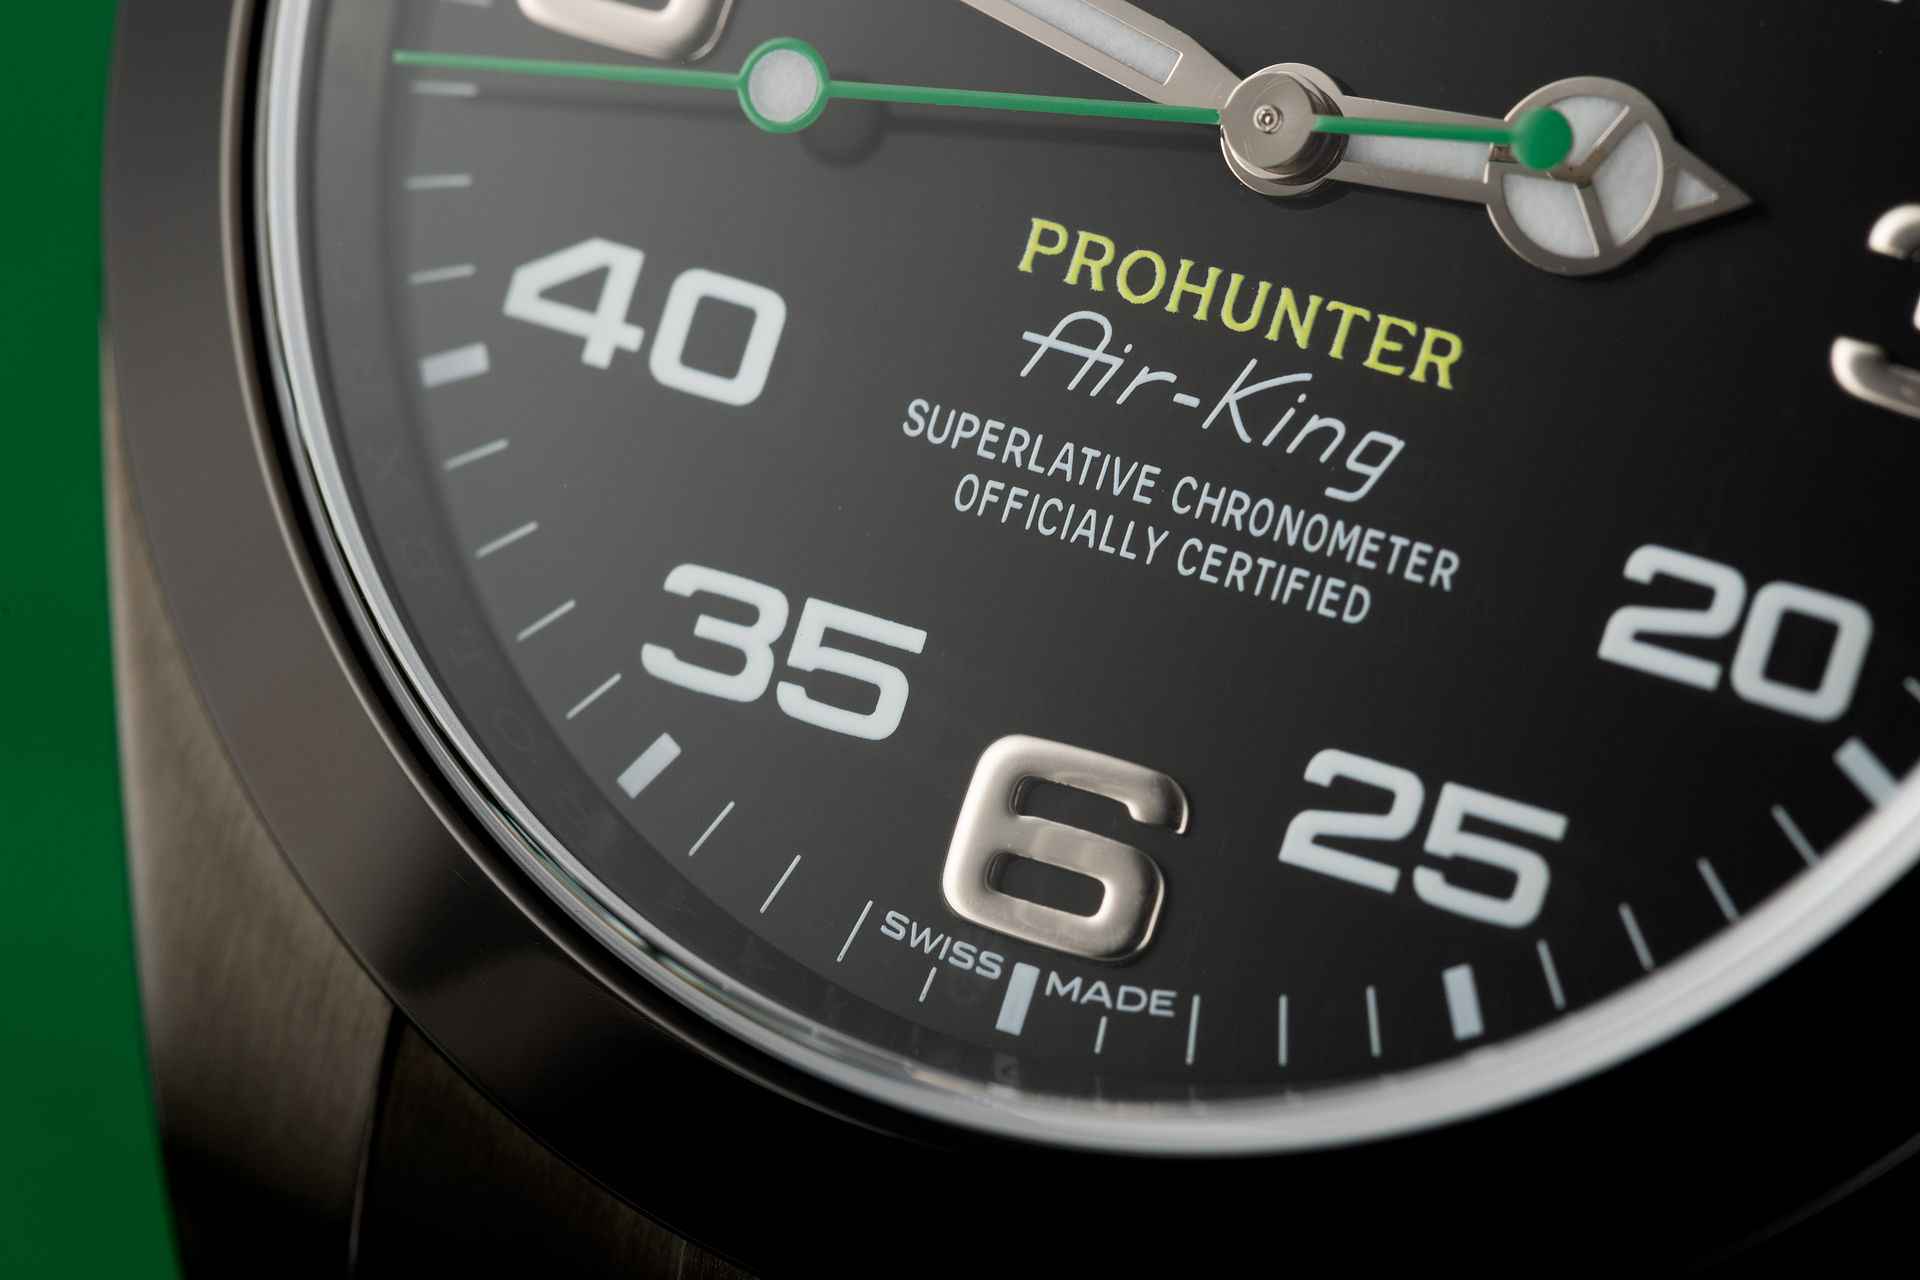 ref 116900 | One of 100 'Limited Edition' | Pro Hunter Air-King